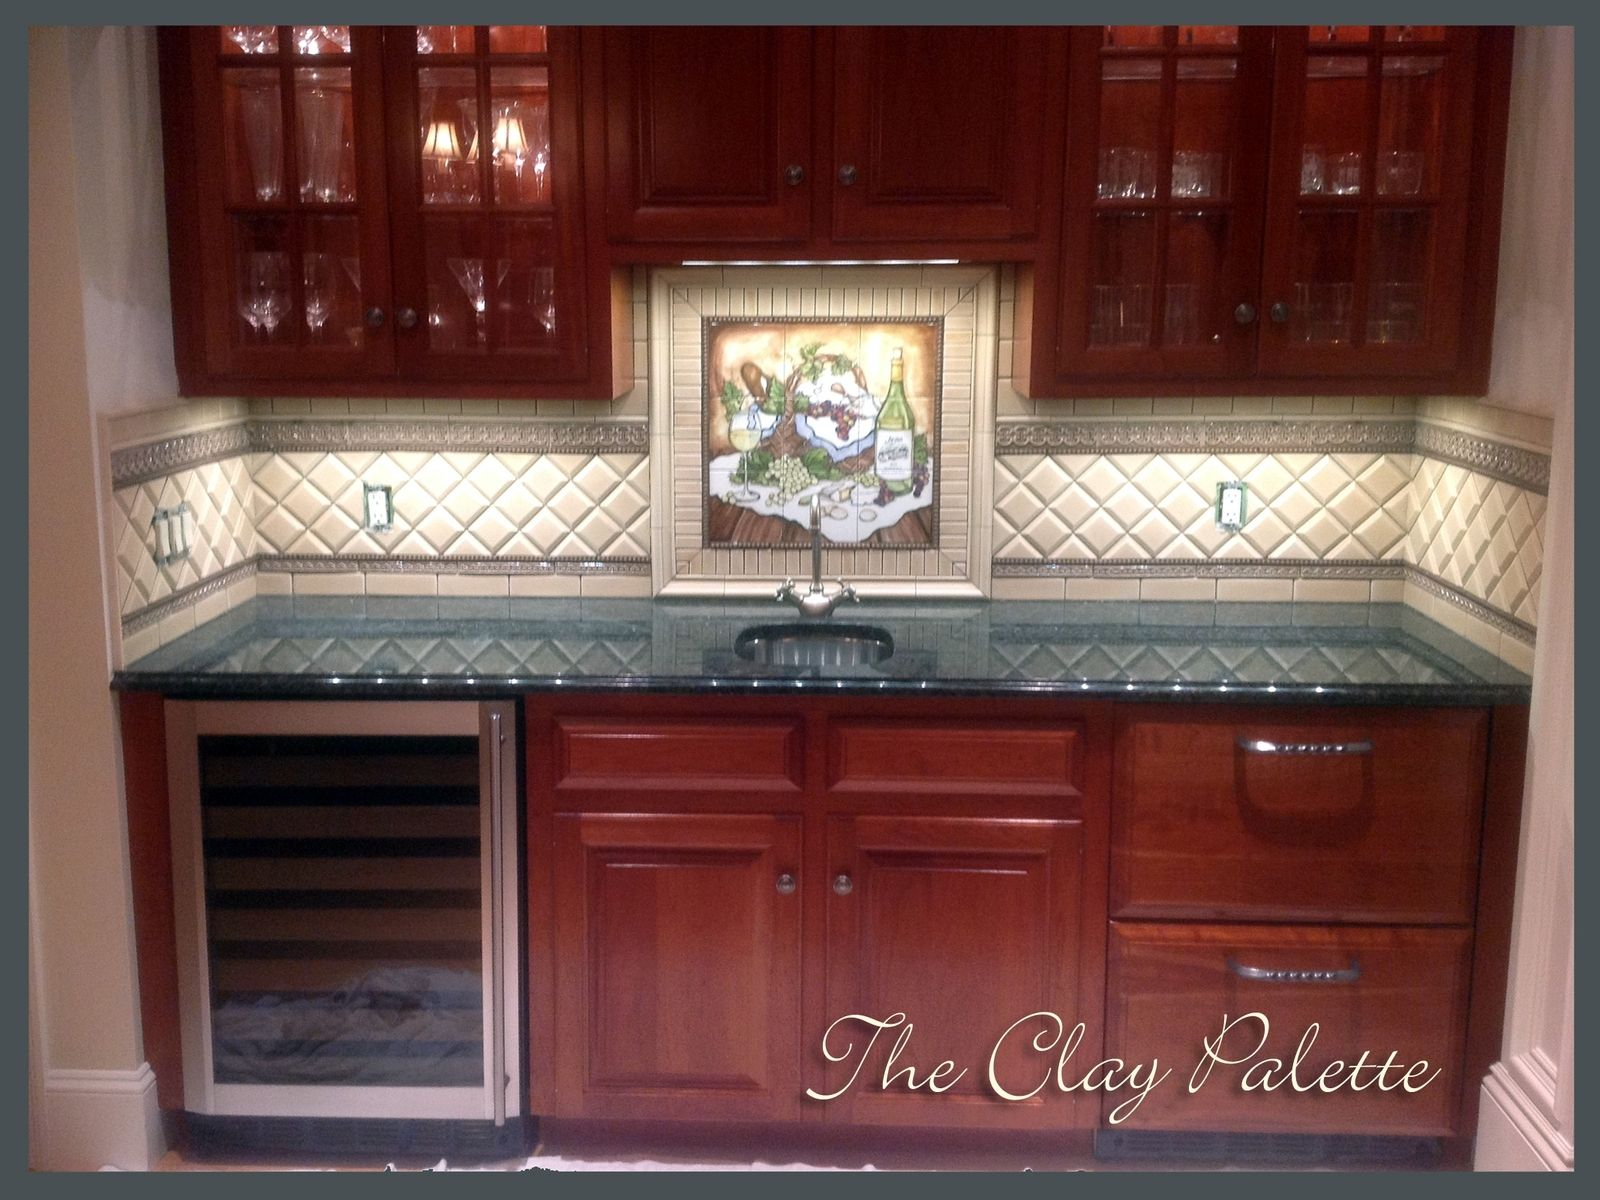 Hand crafted hand painted chardonnay tile backsplash by the clay palette - Custom kitchen backsplash tiles ...